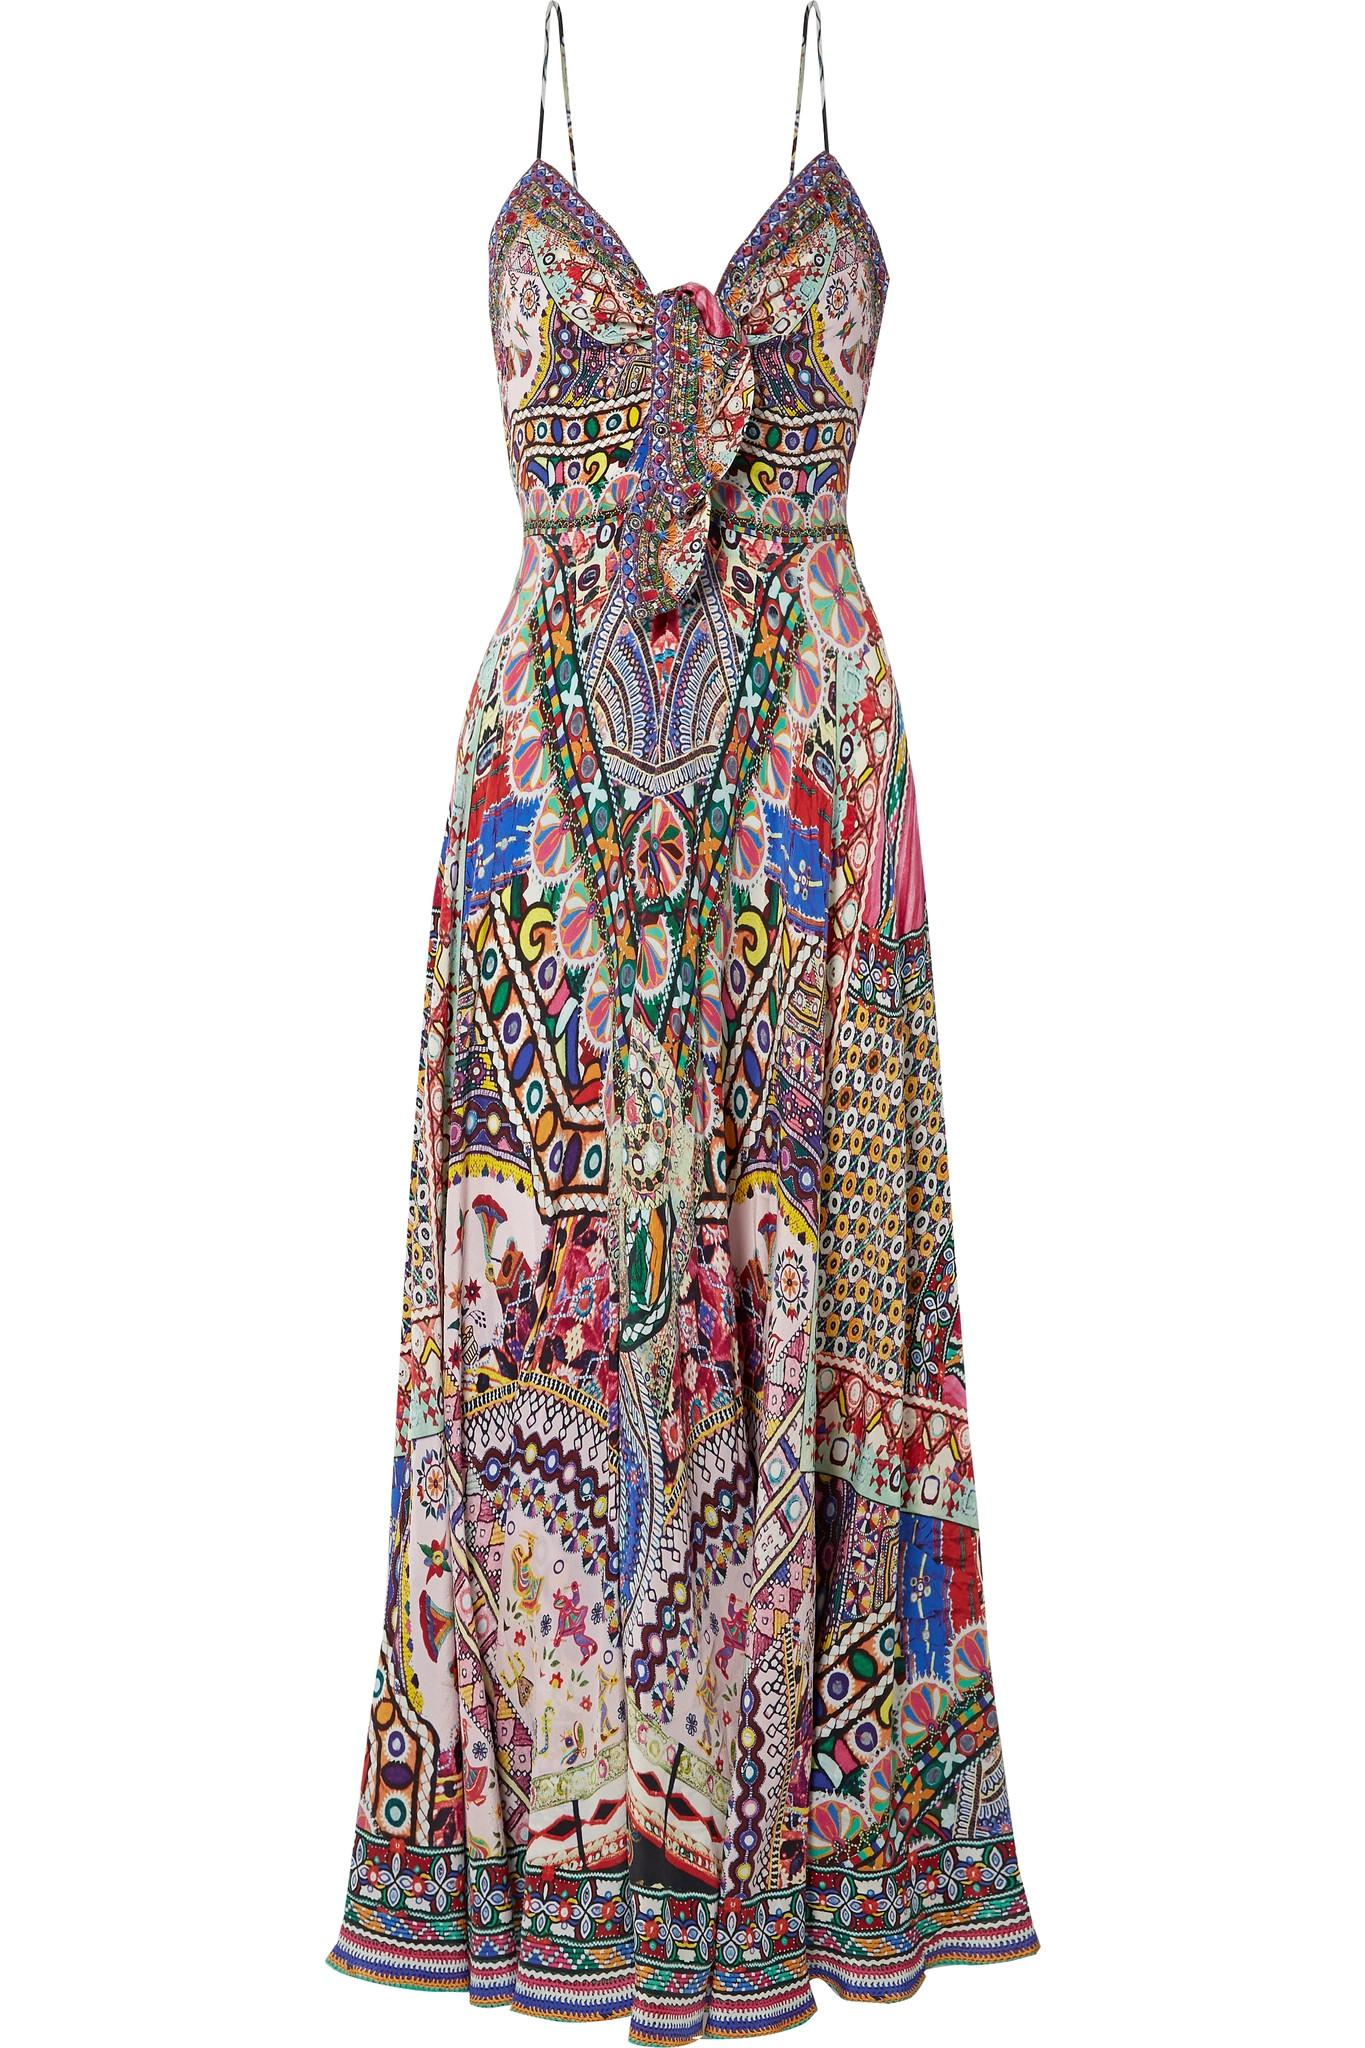 Outlet Cheap Outlet For Nice The Long Way Home Embellished Printed Silk Crepe De Chine Maxi Dress - Pink Camilla Clearance Online NZIW1